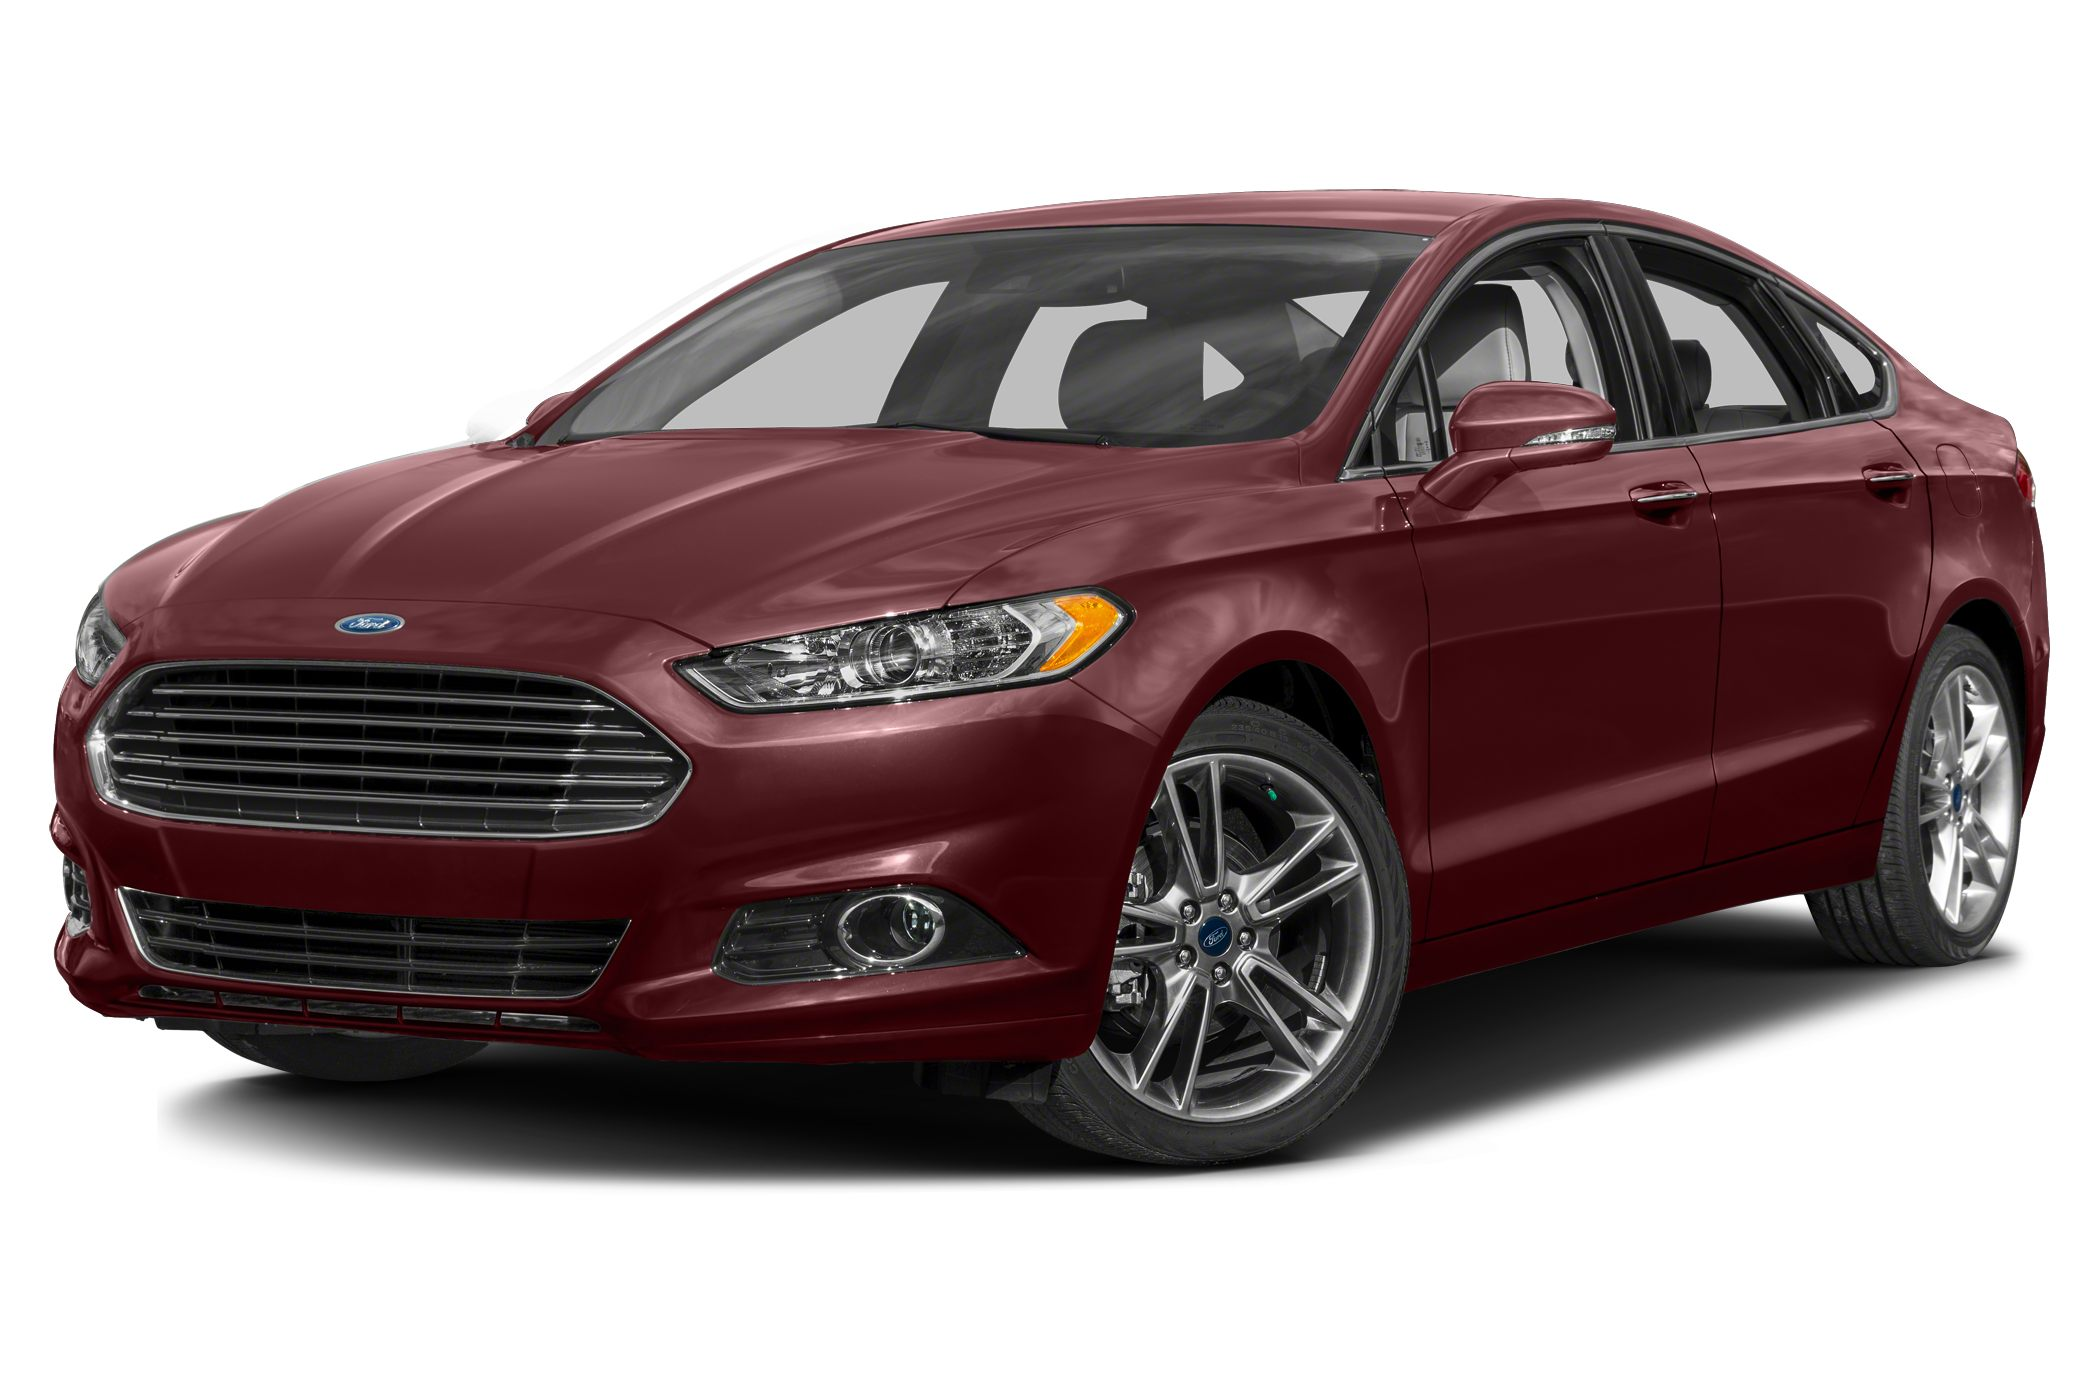 2017 Ford Fusion Specs